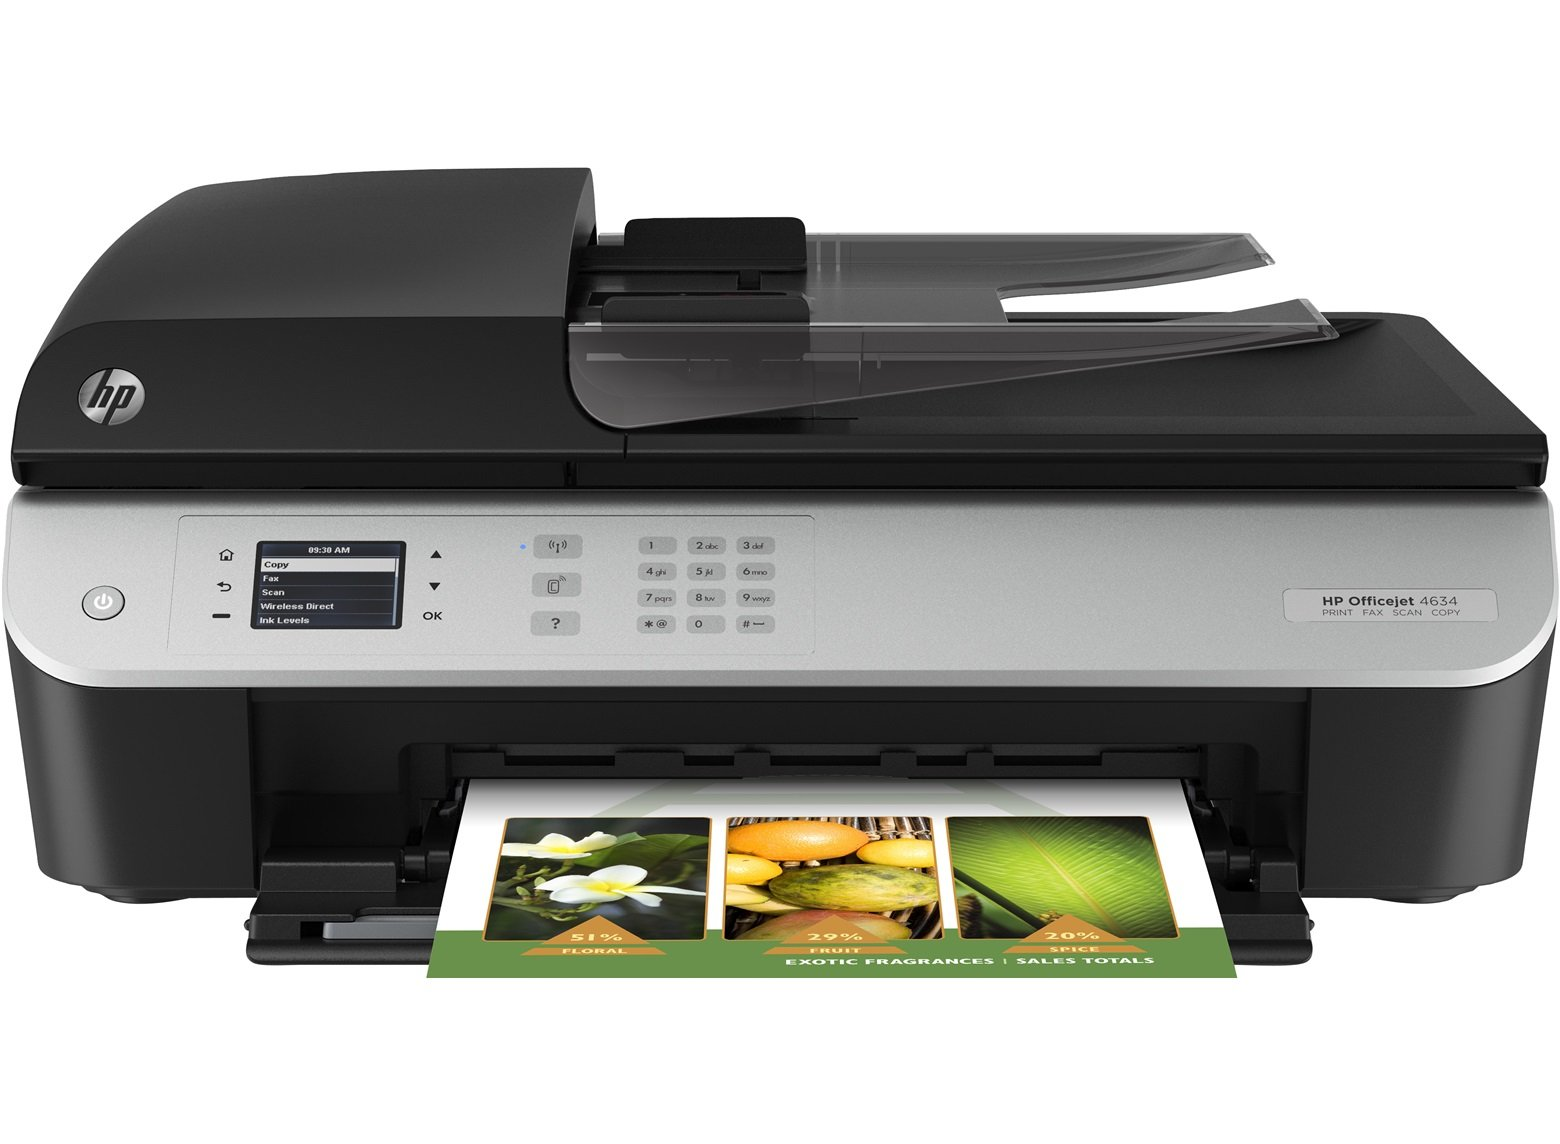 HP Officejet 4634 e-All-in-One Ink Cartridges